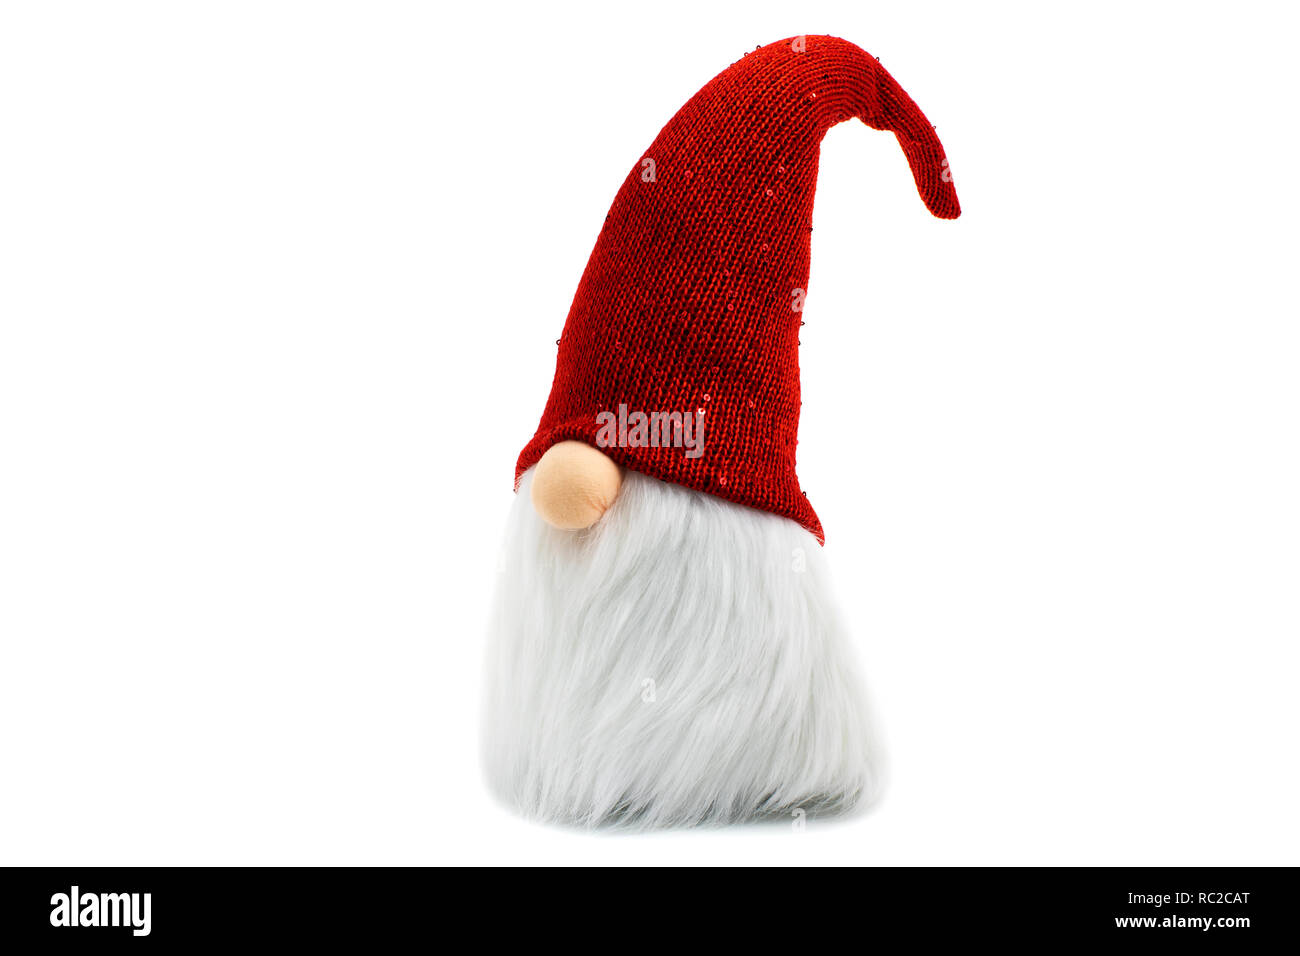 Gnome a Christmas elf wearing big red with glitters hat and standing on white background - Stock Image